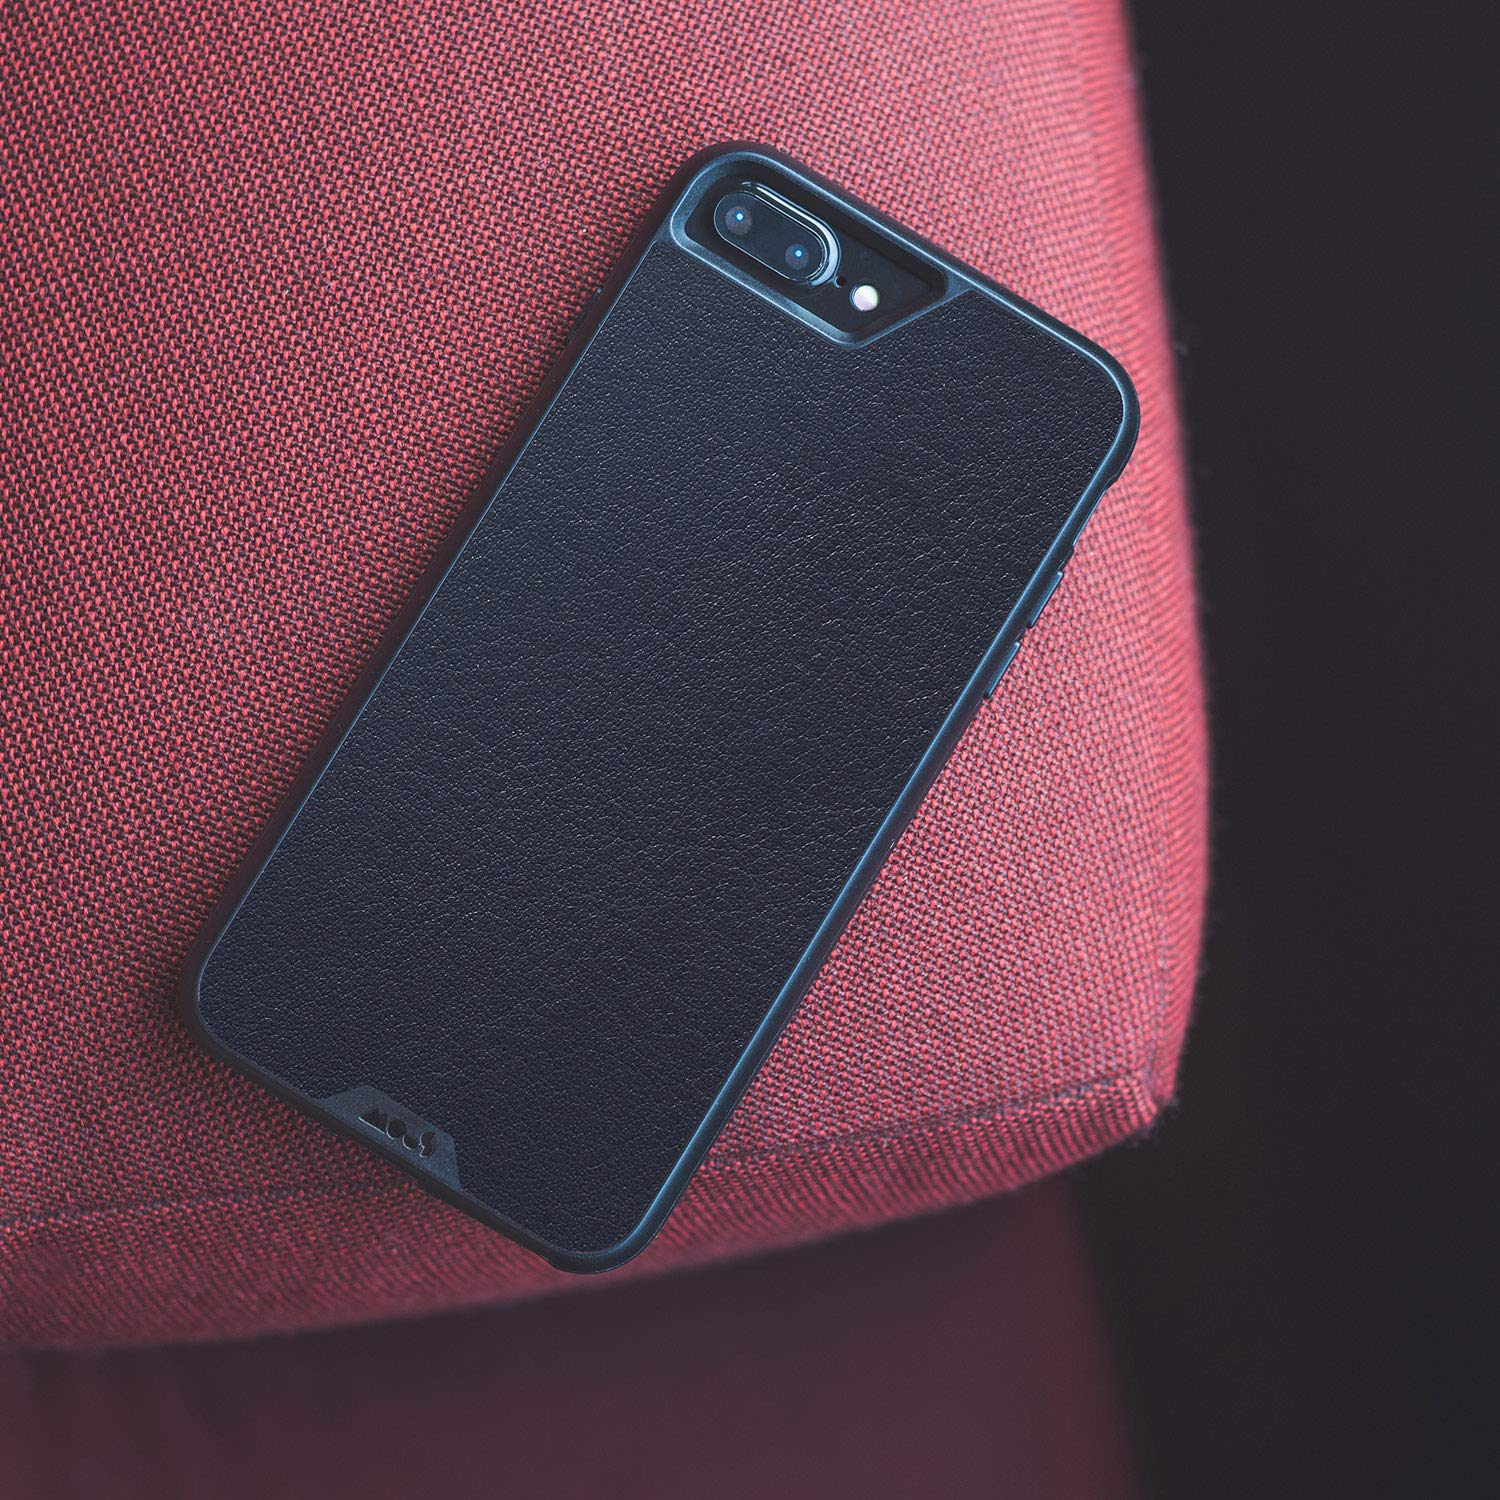 Mous Protective iPhone Case 8+/7+/6s+/6+ Plus - Black Leather - Limitless 2.0 by MOUS (Image #4)